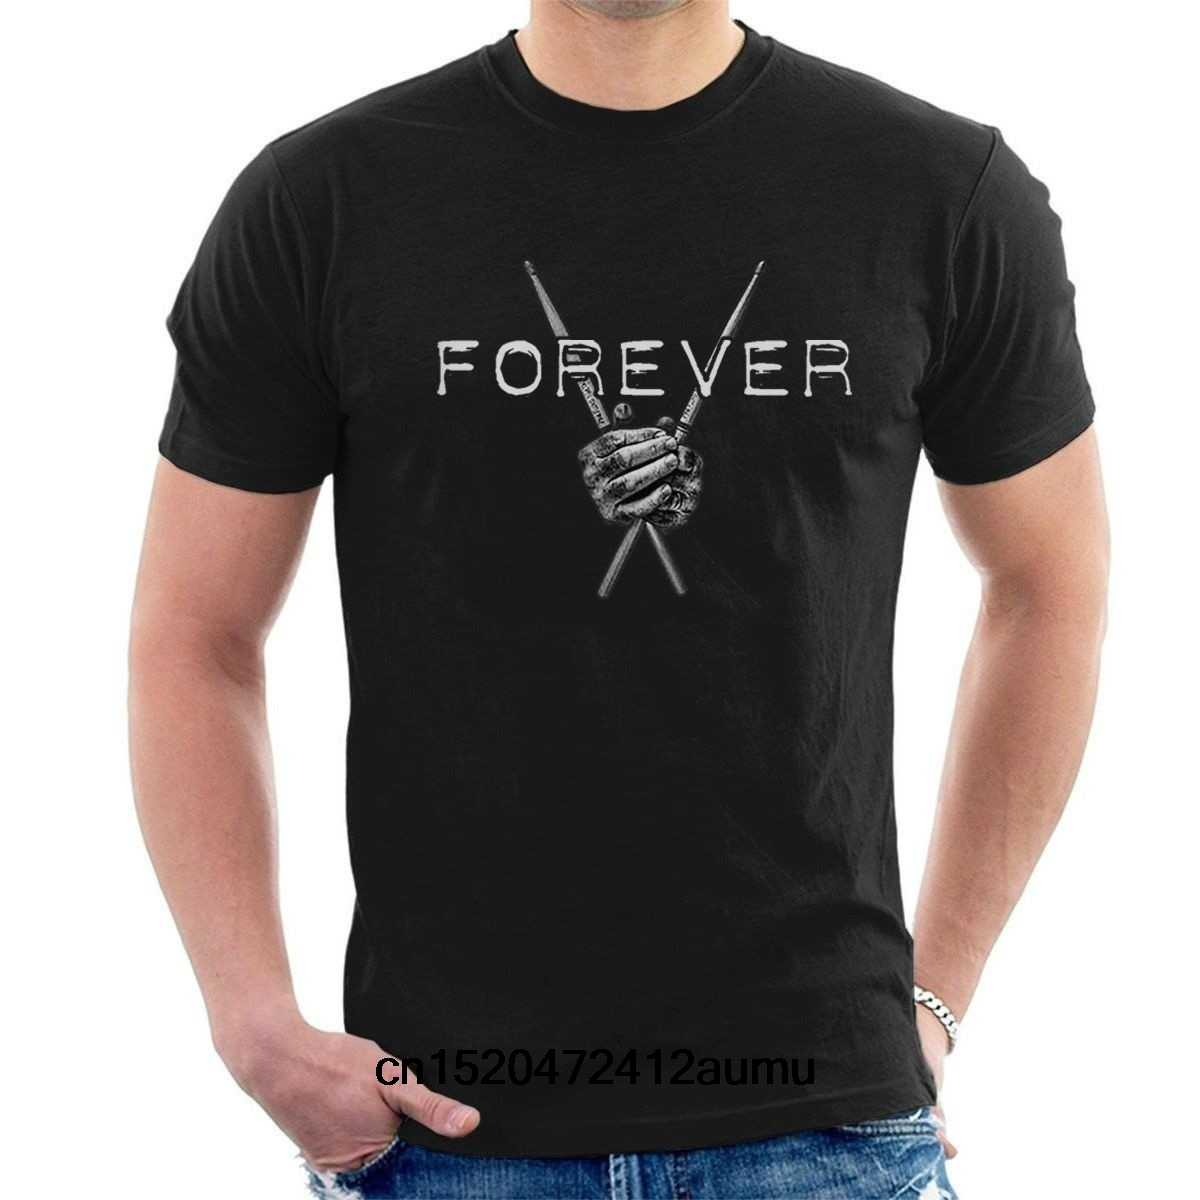 Fashion Man Drums Forever T-shirt Drummers Tee Paiste Zildjian Tama Pearl Sabian A04 Casual T Shirt Printed Tops